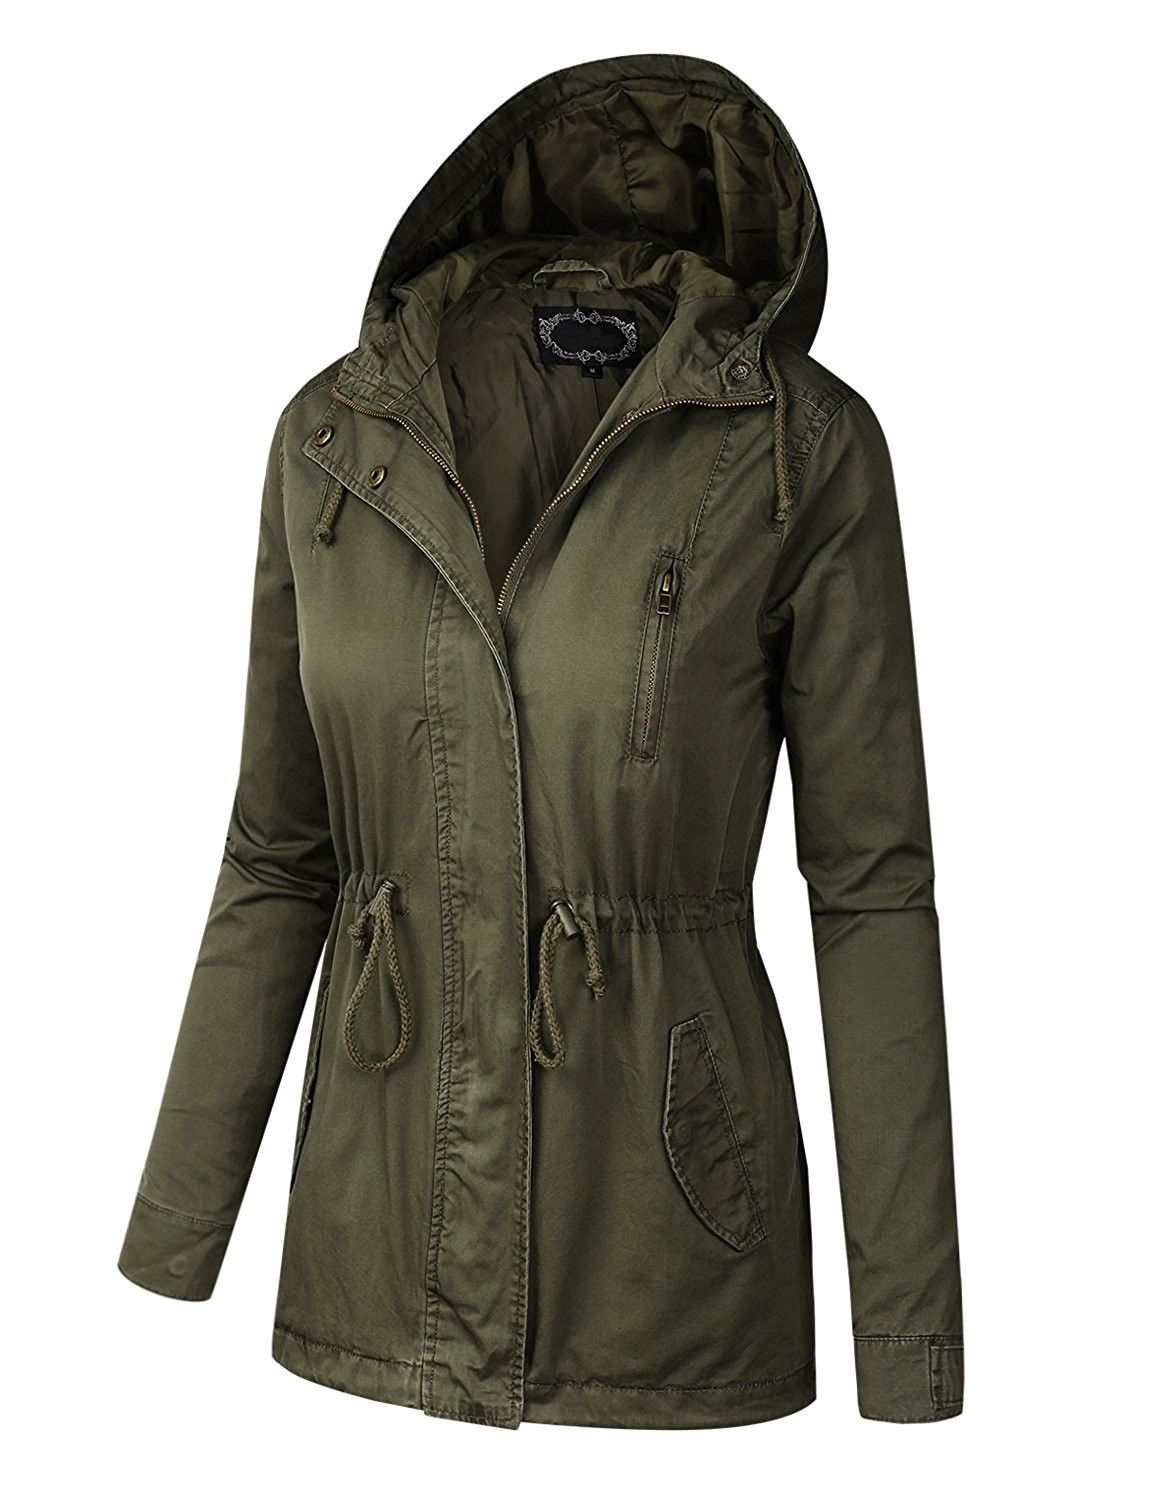 4a1a7904755 BILY Women Plus Size Anorak Safari Hoodie Jacket - Olive ...